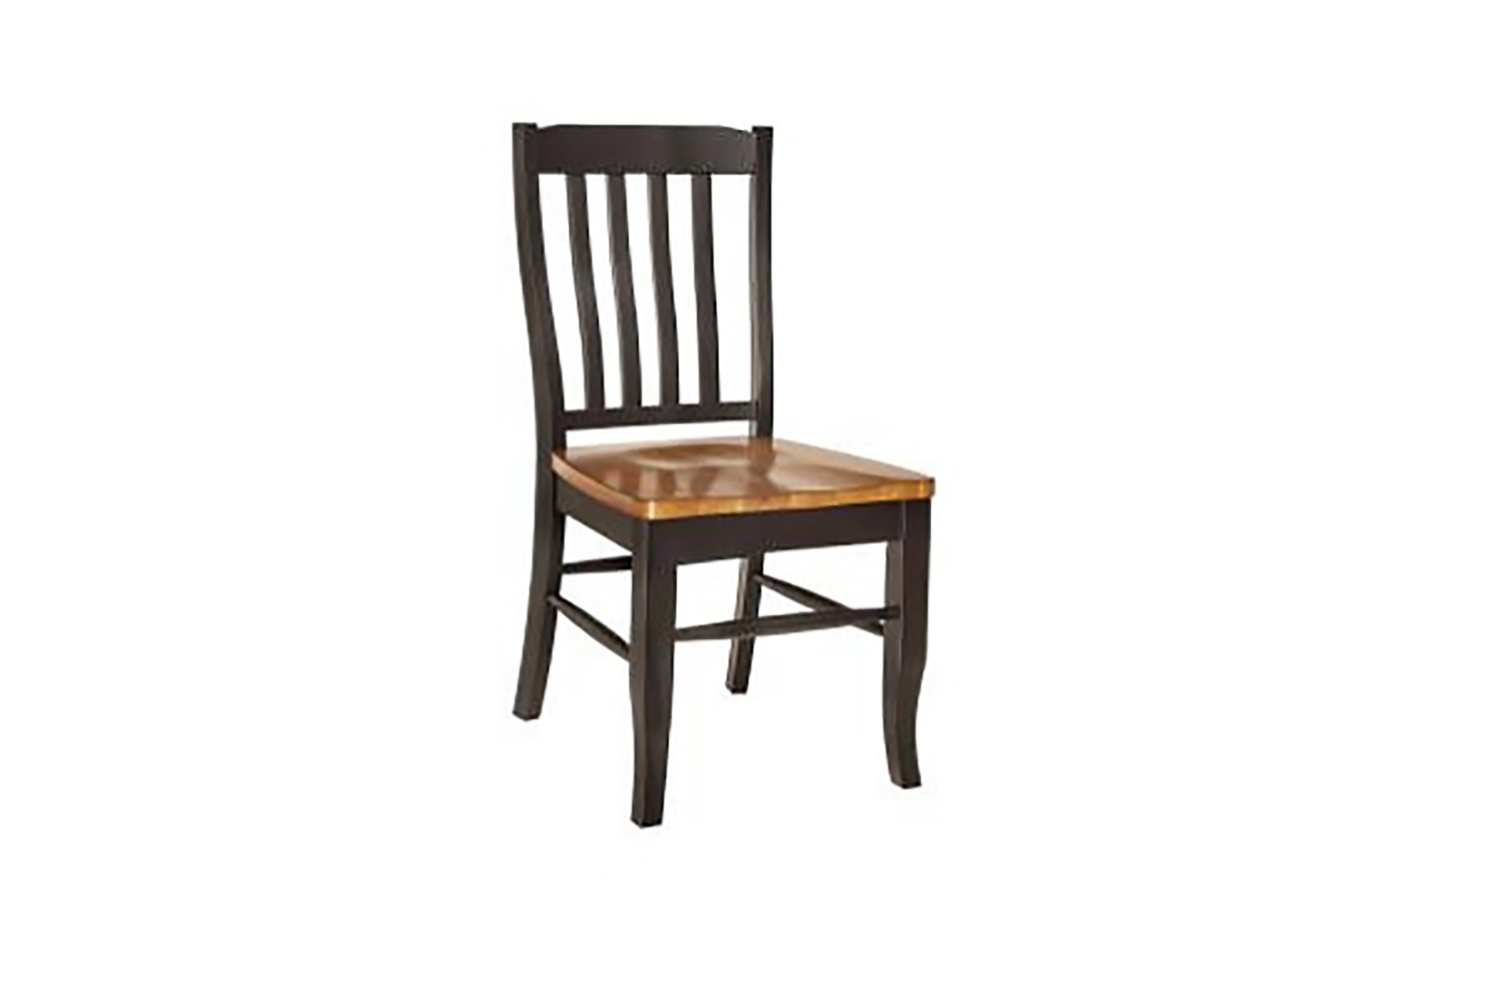 Chelsea Home Twain Side Chair - Harvest/Black